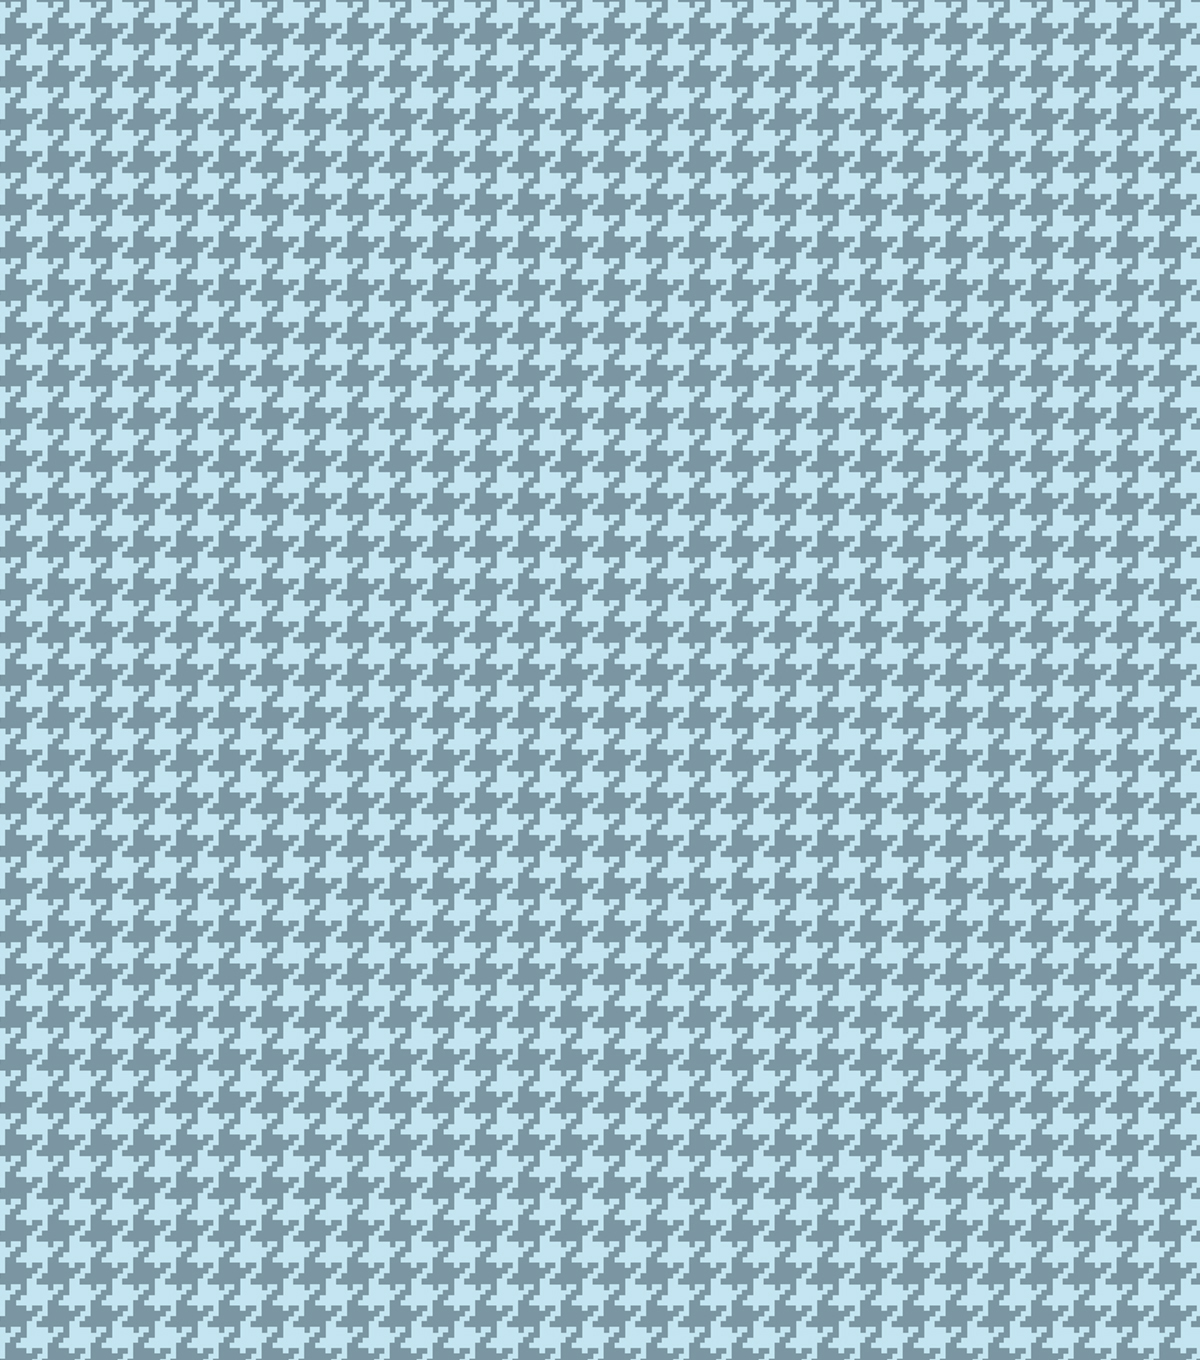 Quilt Block of the Month Coordinating Fabric -Teal Houndstooth